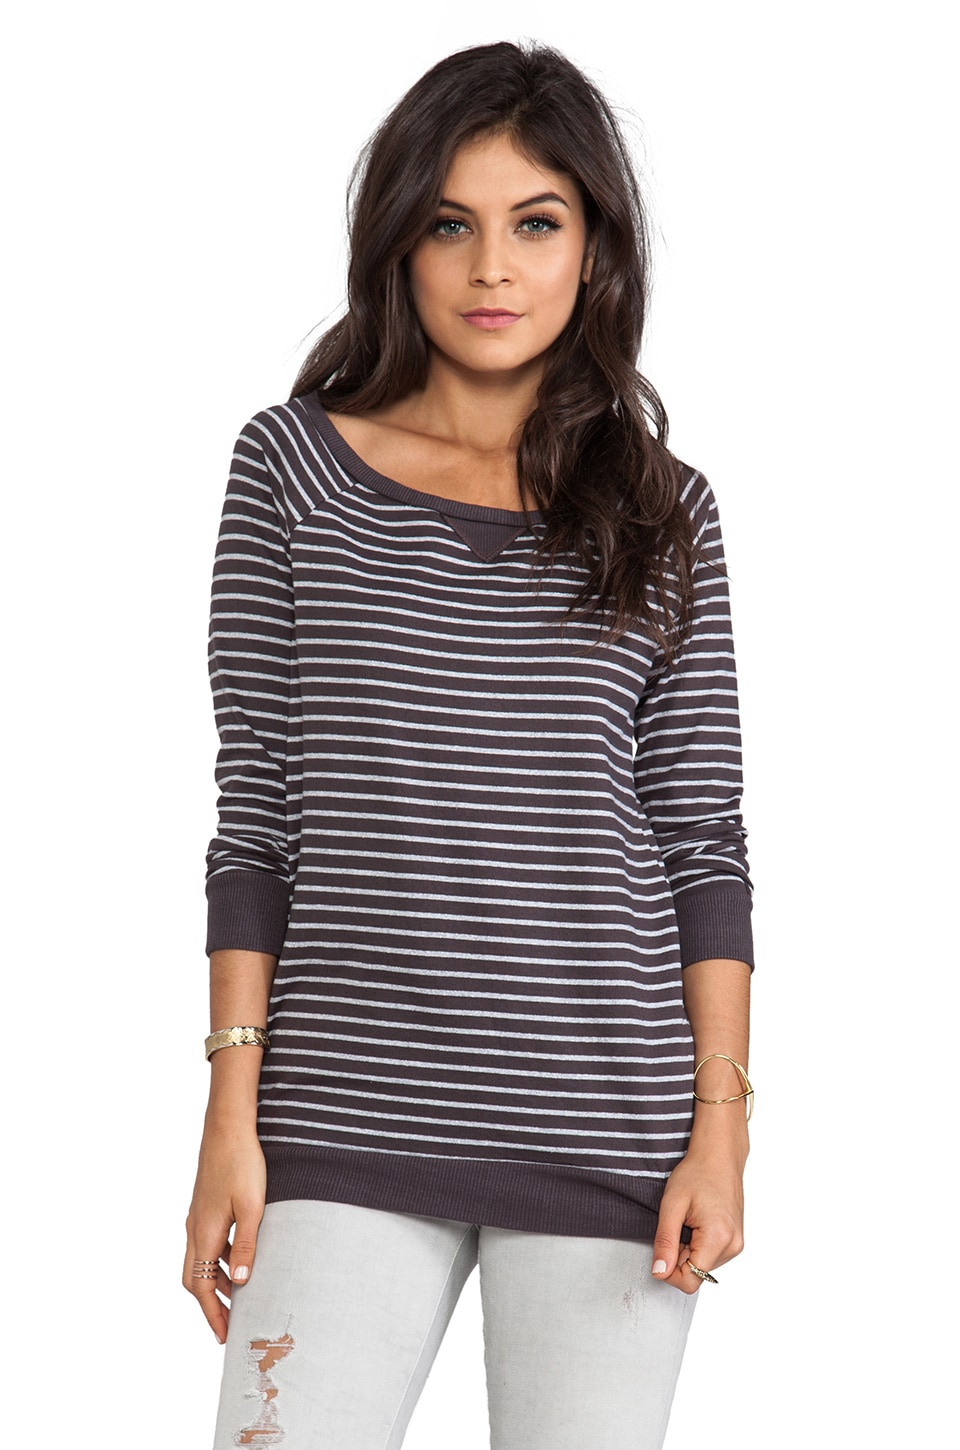 Soft Joie Briely Stripe Top in Shale/Heather Grey